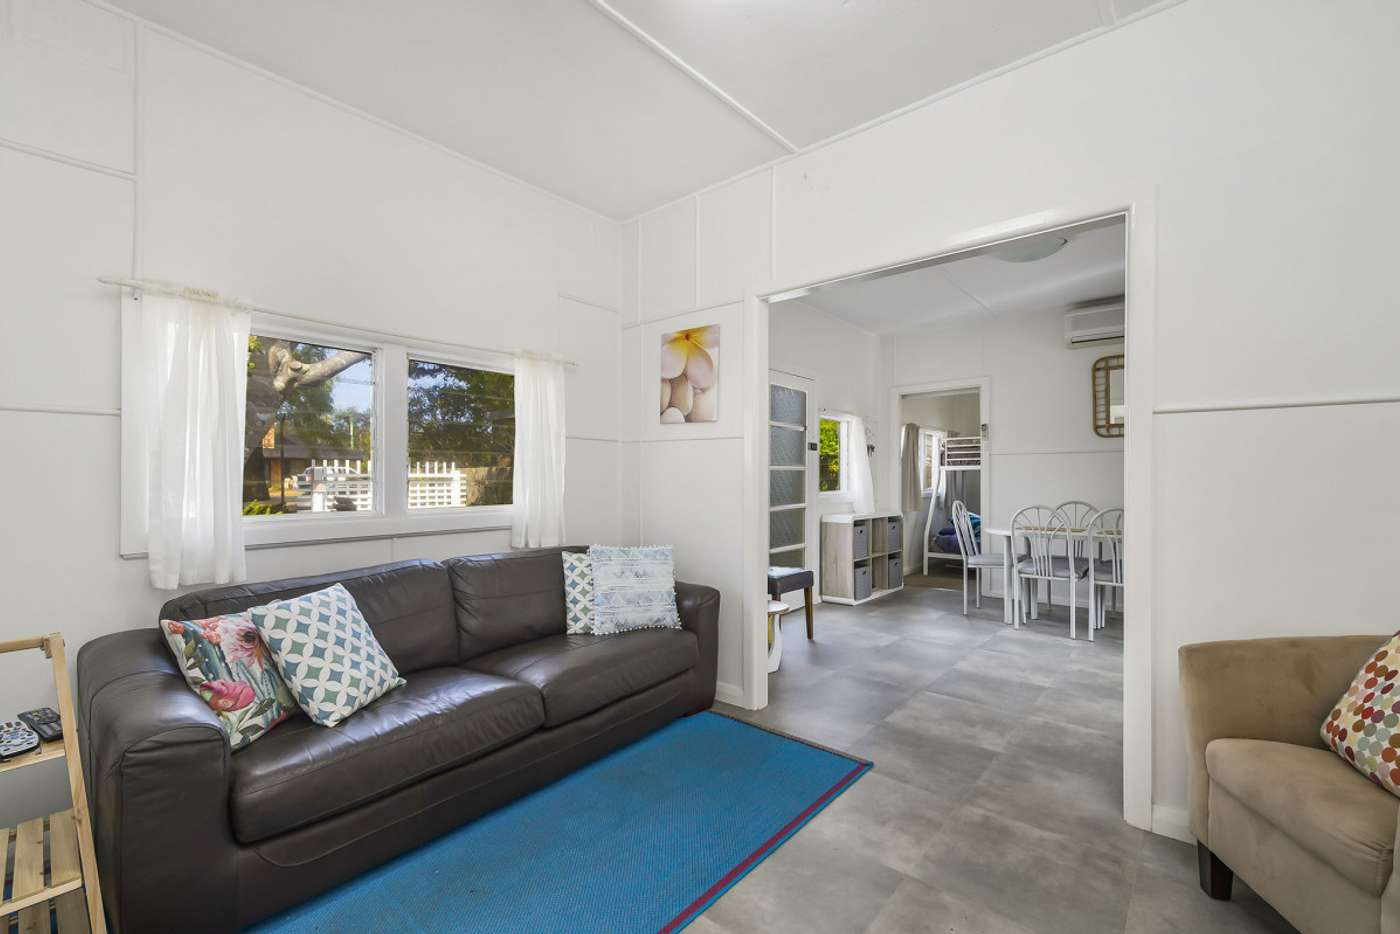 Fifth view of Homely house listing, 1 Wall Street, North Haven NSW 2443